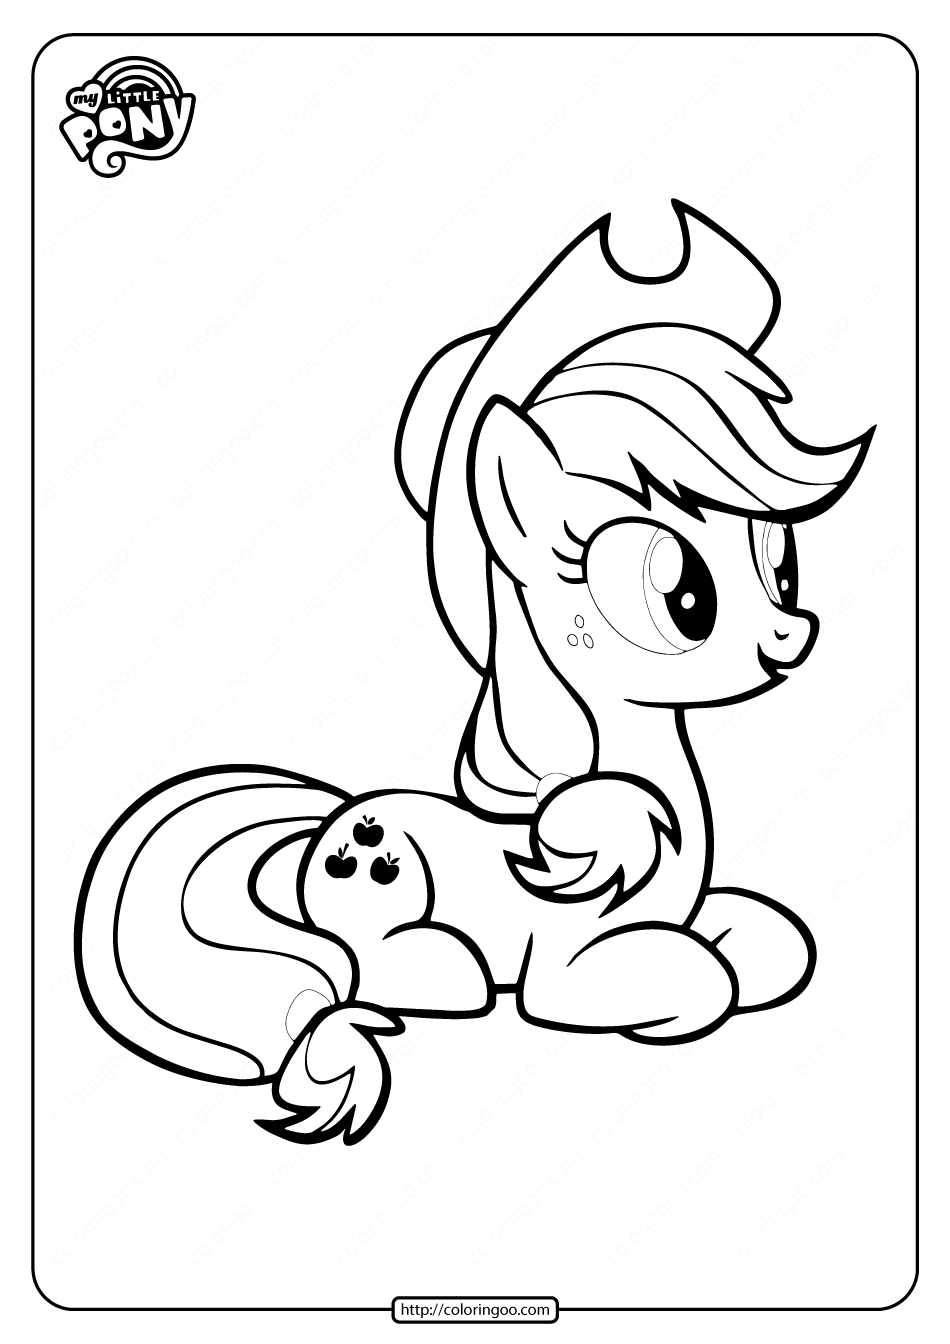 Mlp Applejack Coloring Pages In 2020 Coloring Pages Applejack My Little Pony